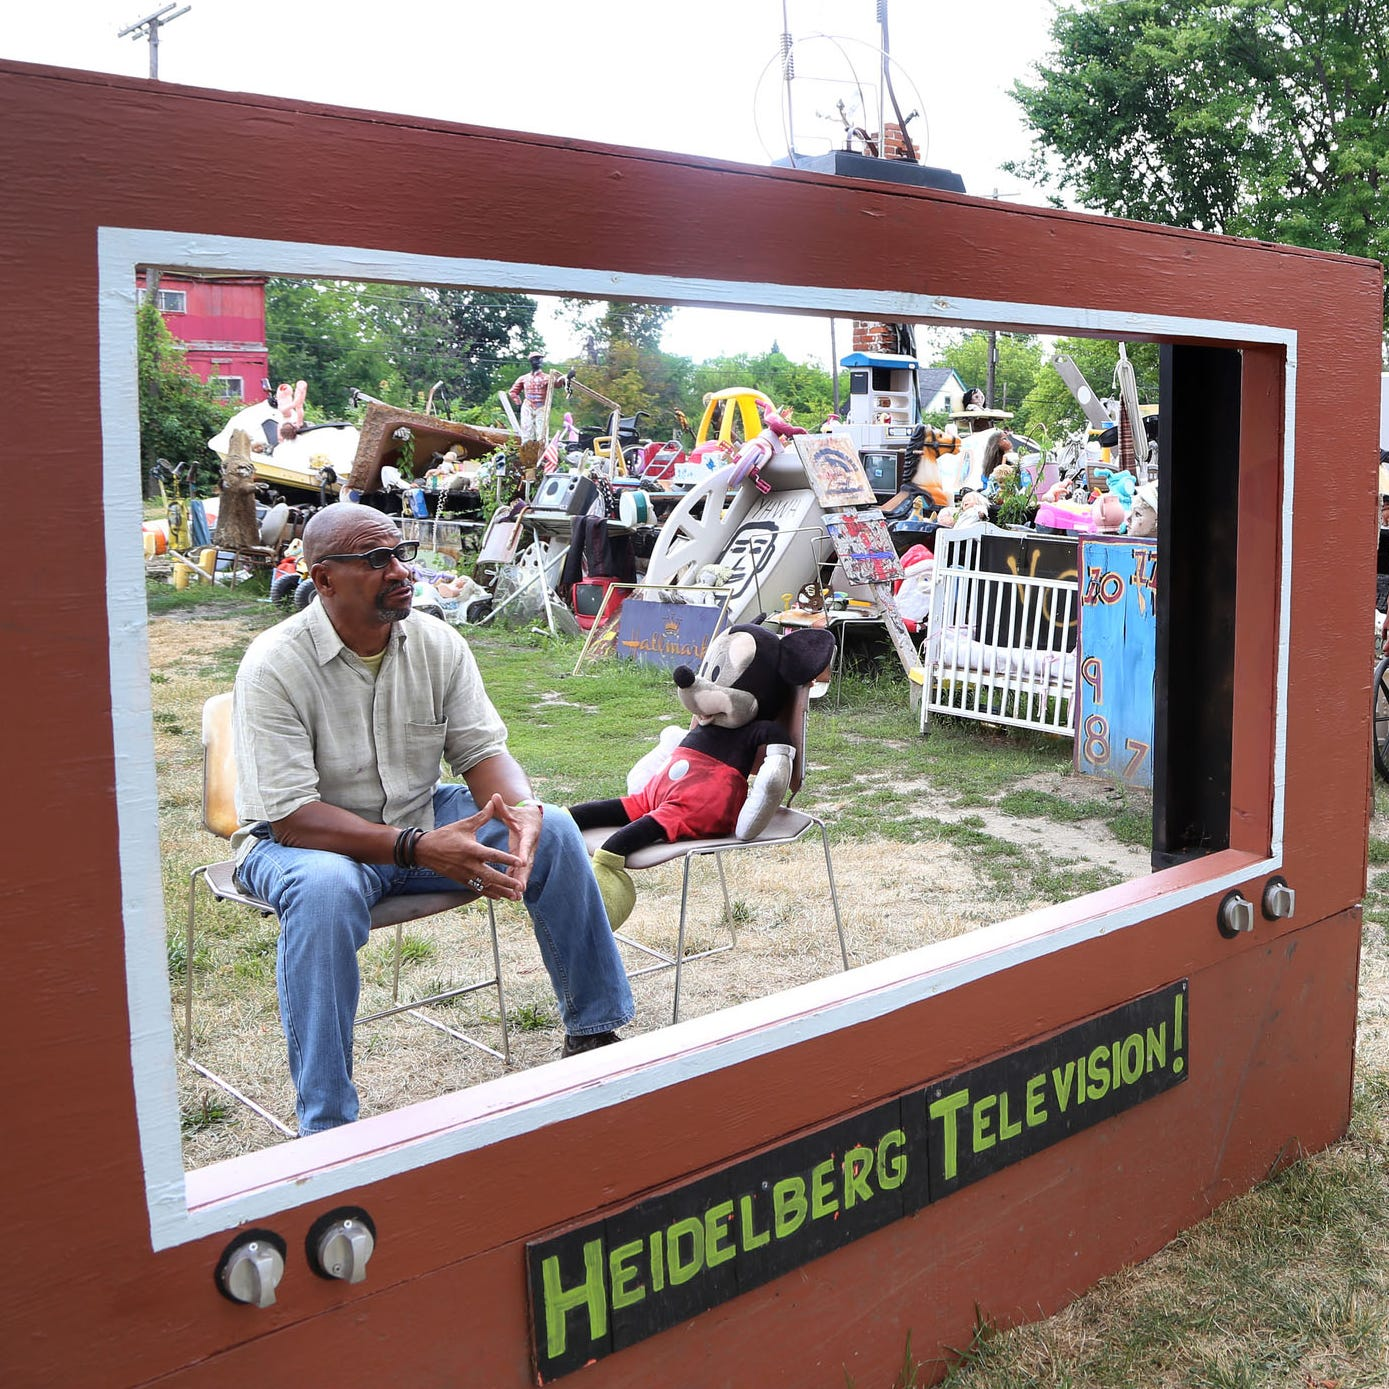 Heidelberg Project is coming home, with new HQ in neighborhood